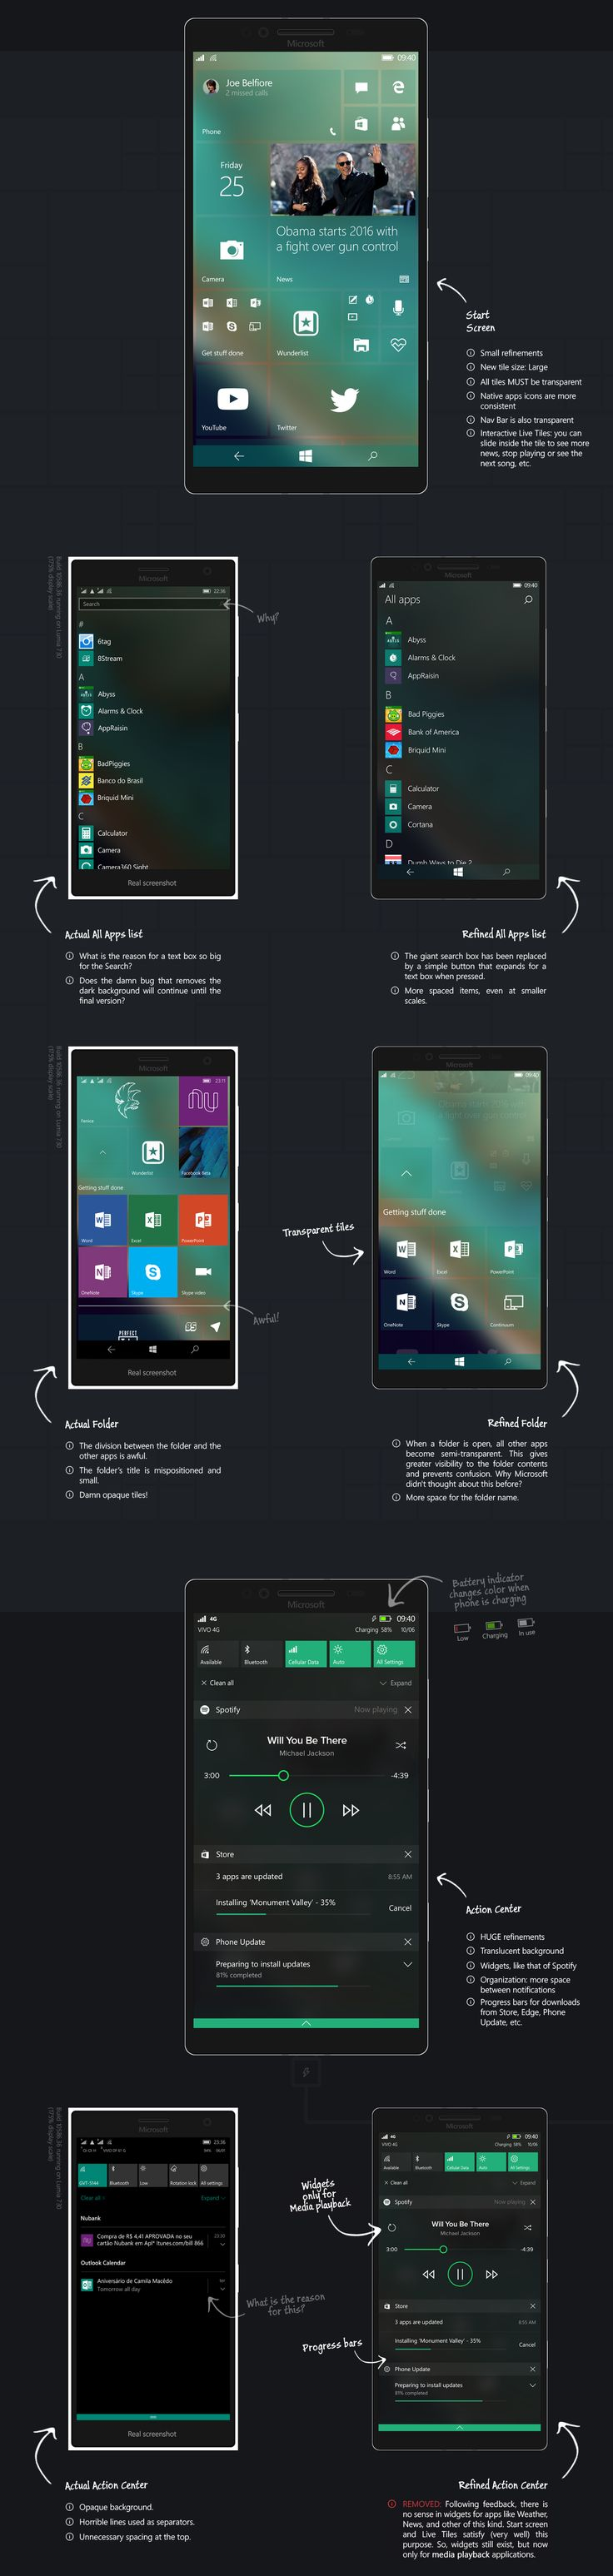 An overview about Windows 10 Mobile UI/UX design, considering details overlooked…